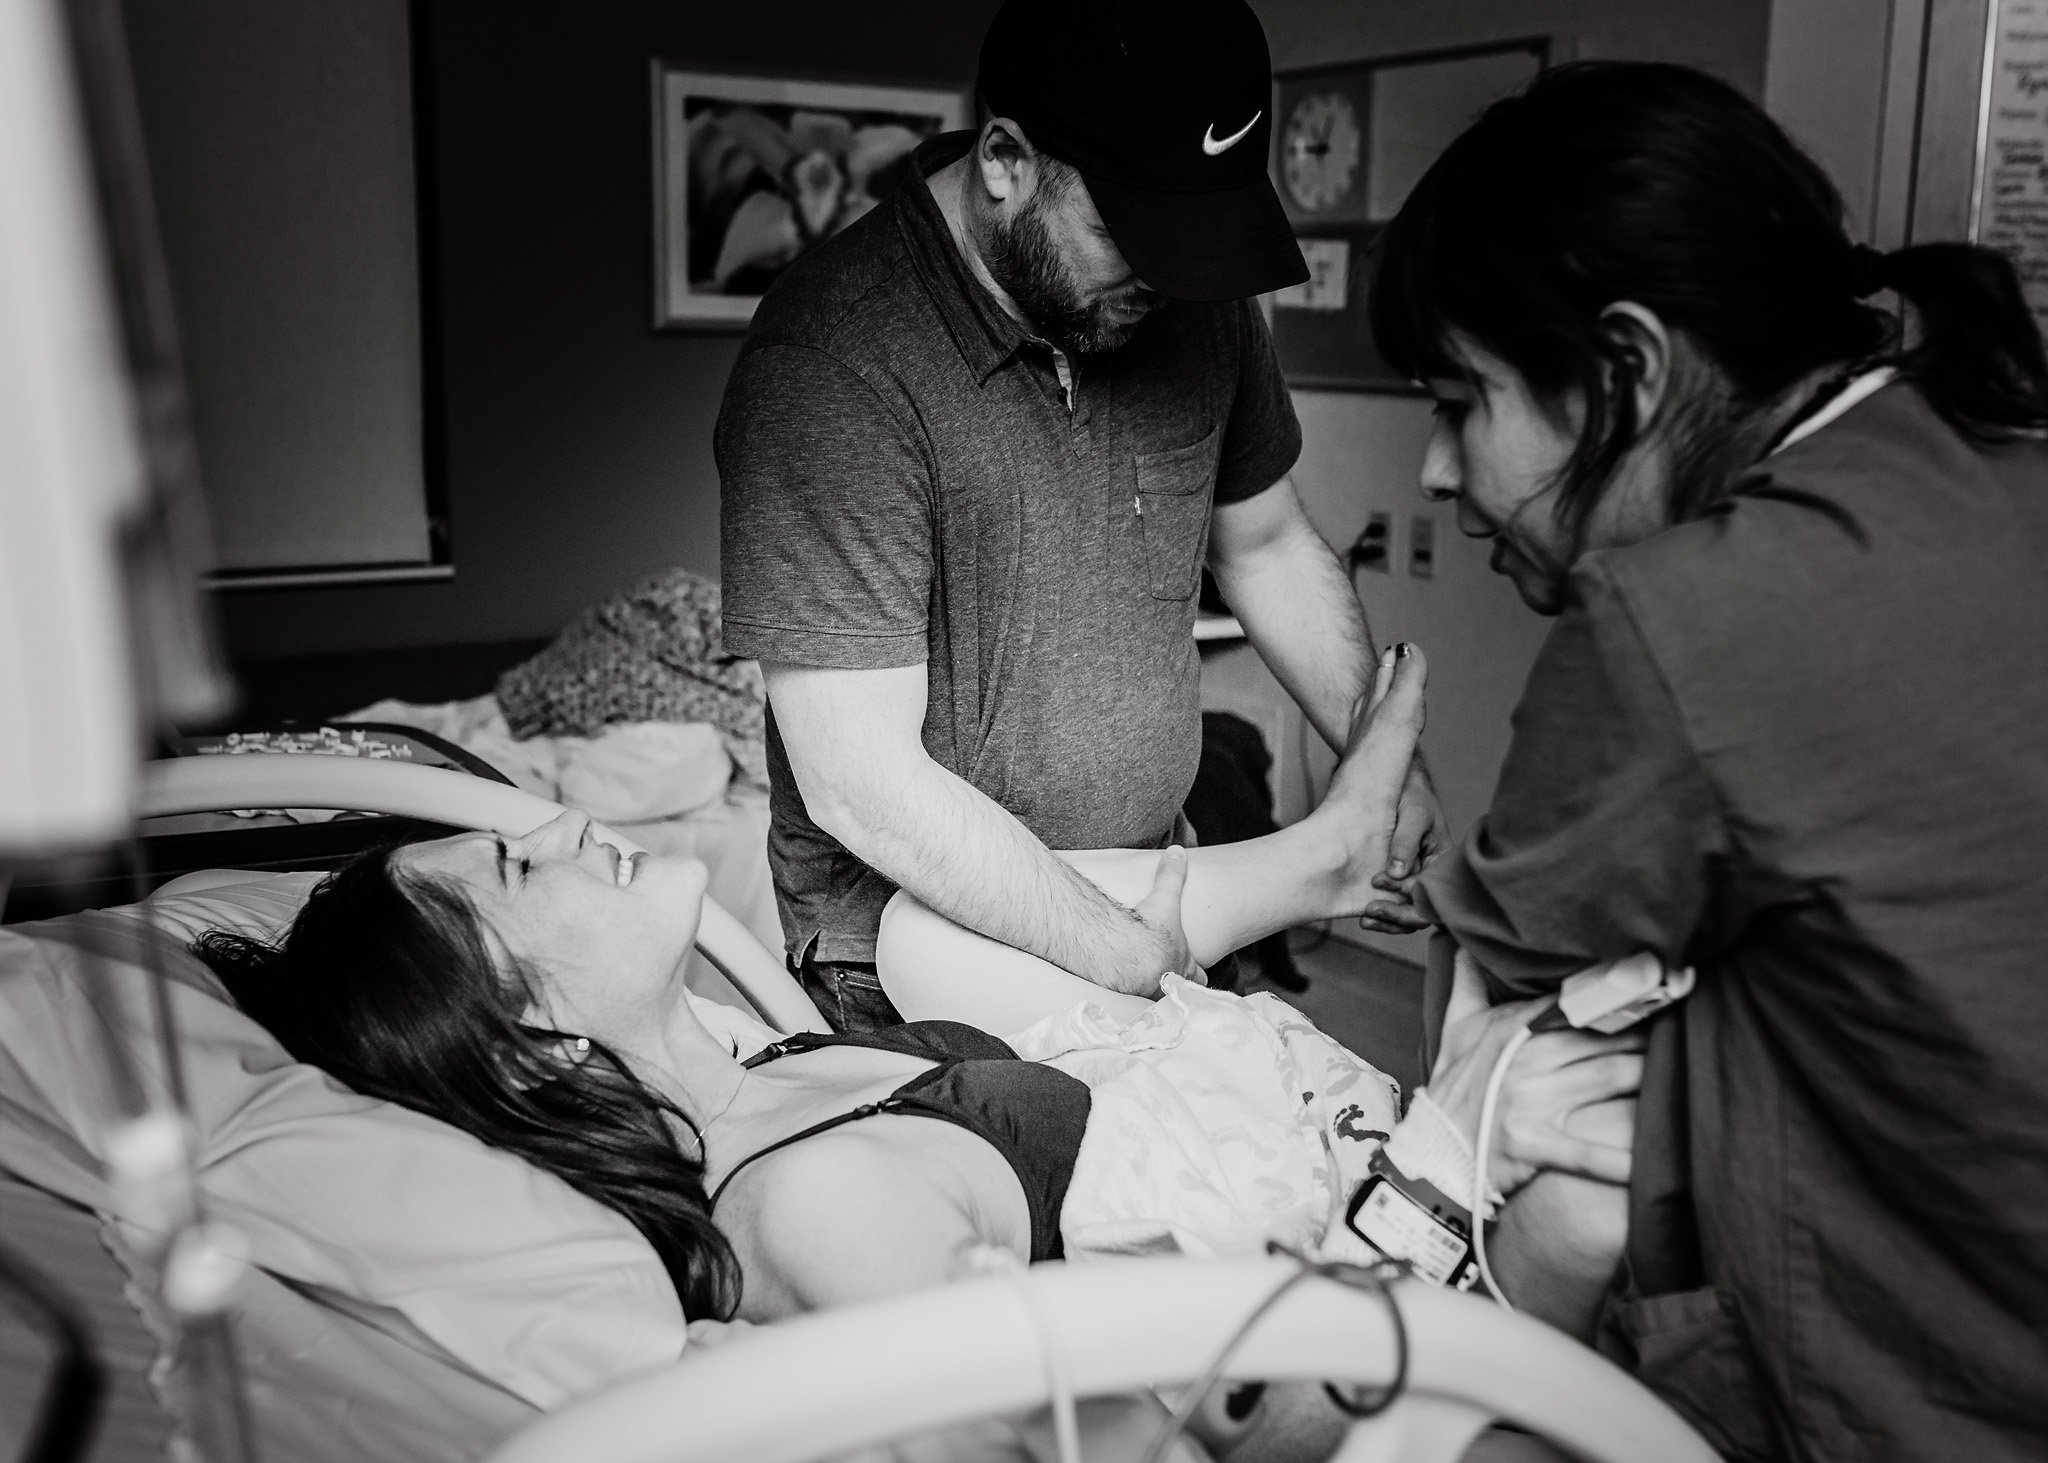 Beautiful birth photo of mother in labor pushing